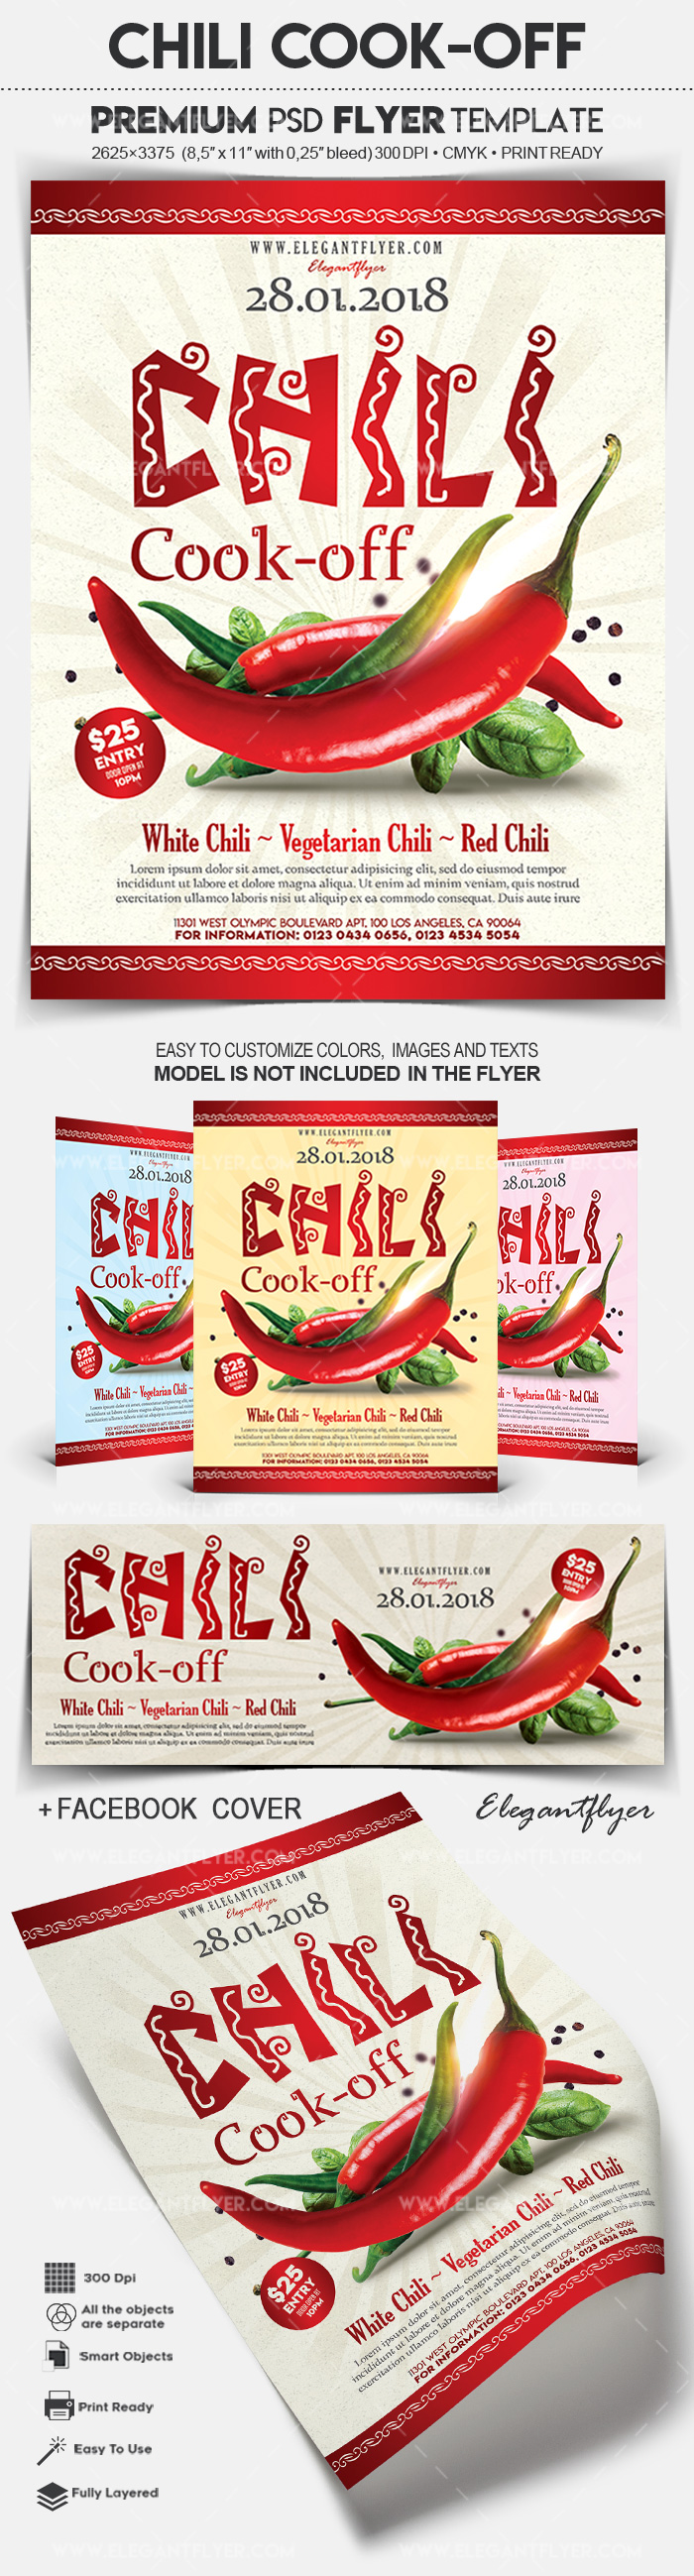 Chili cook off flyer psd template facebook cover by elegantflyer chili cook off flyer psd template facebook cover xflitez Choice Image